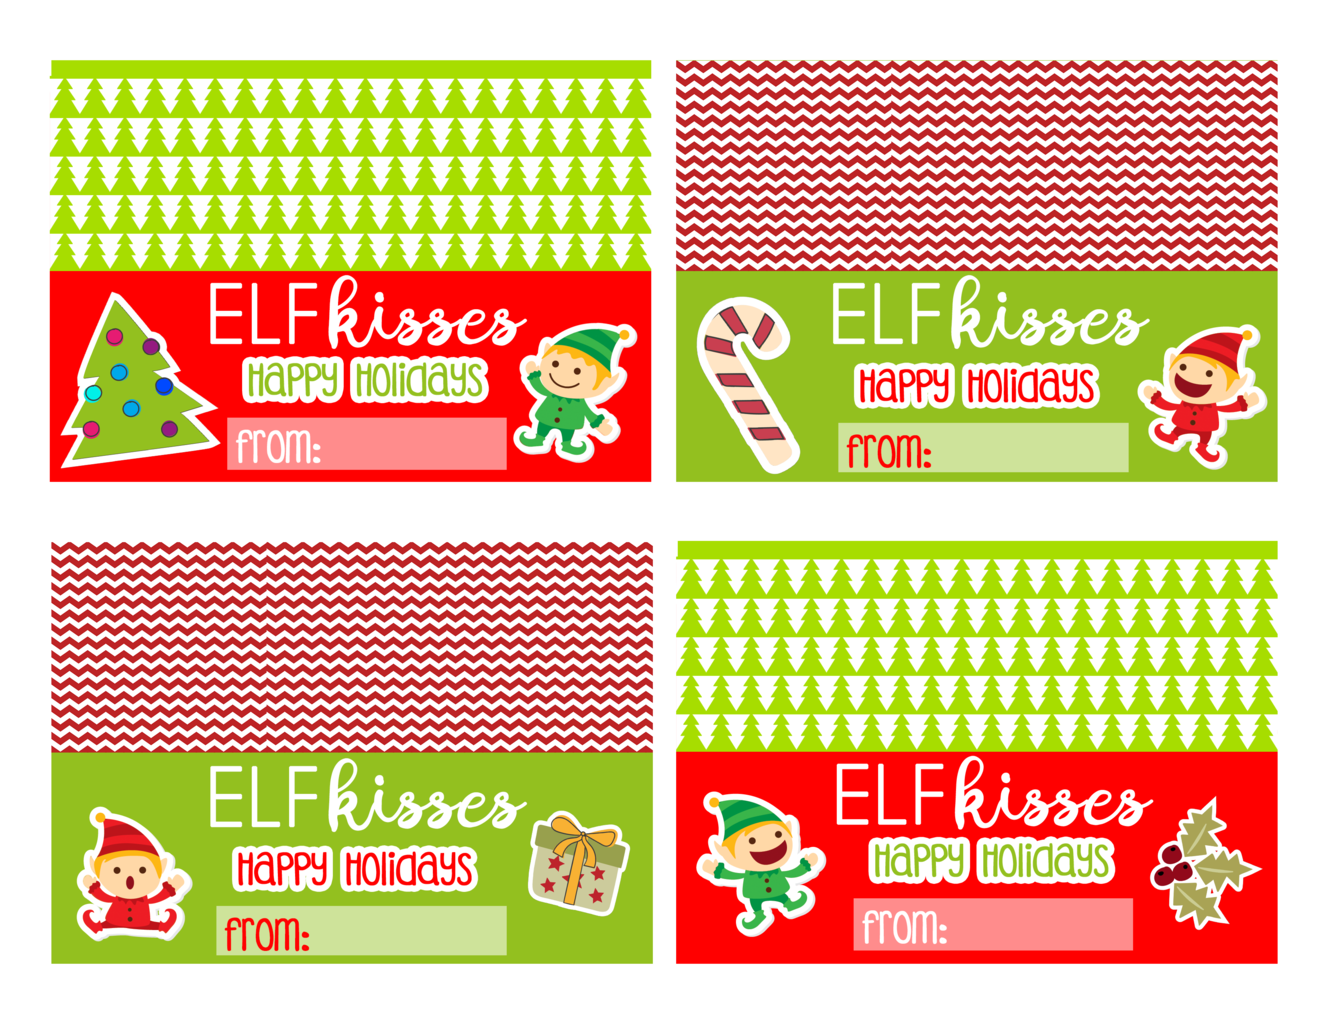 image about Elf Kisses Printable named Elf Upon The Shelf Printables Bag Toppers - This Worthey Daily life